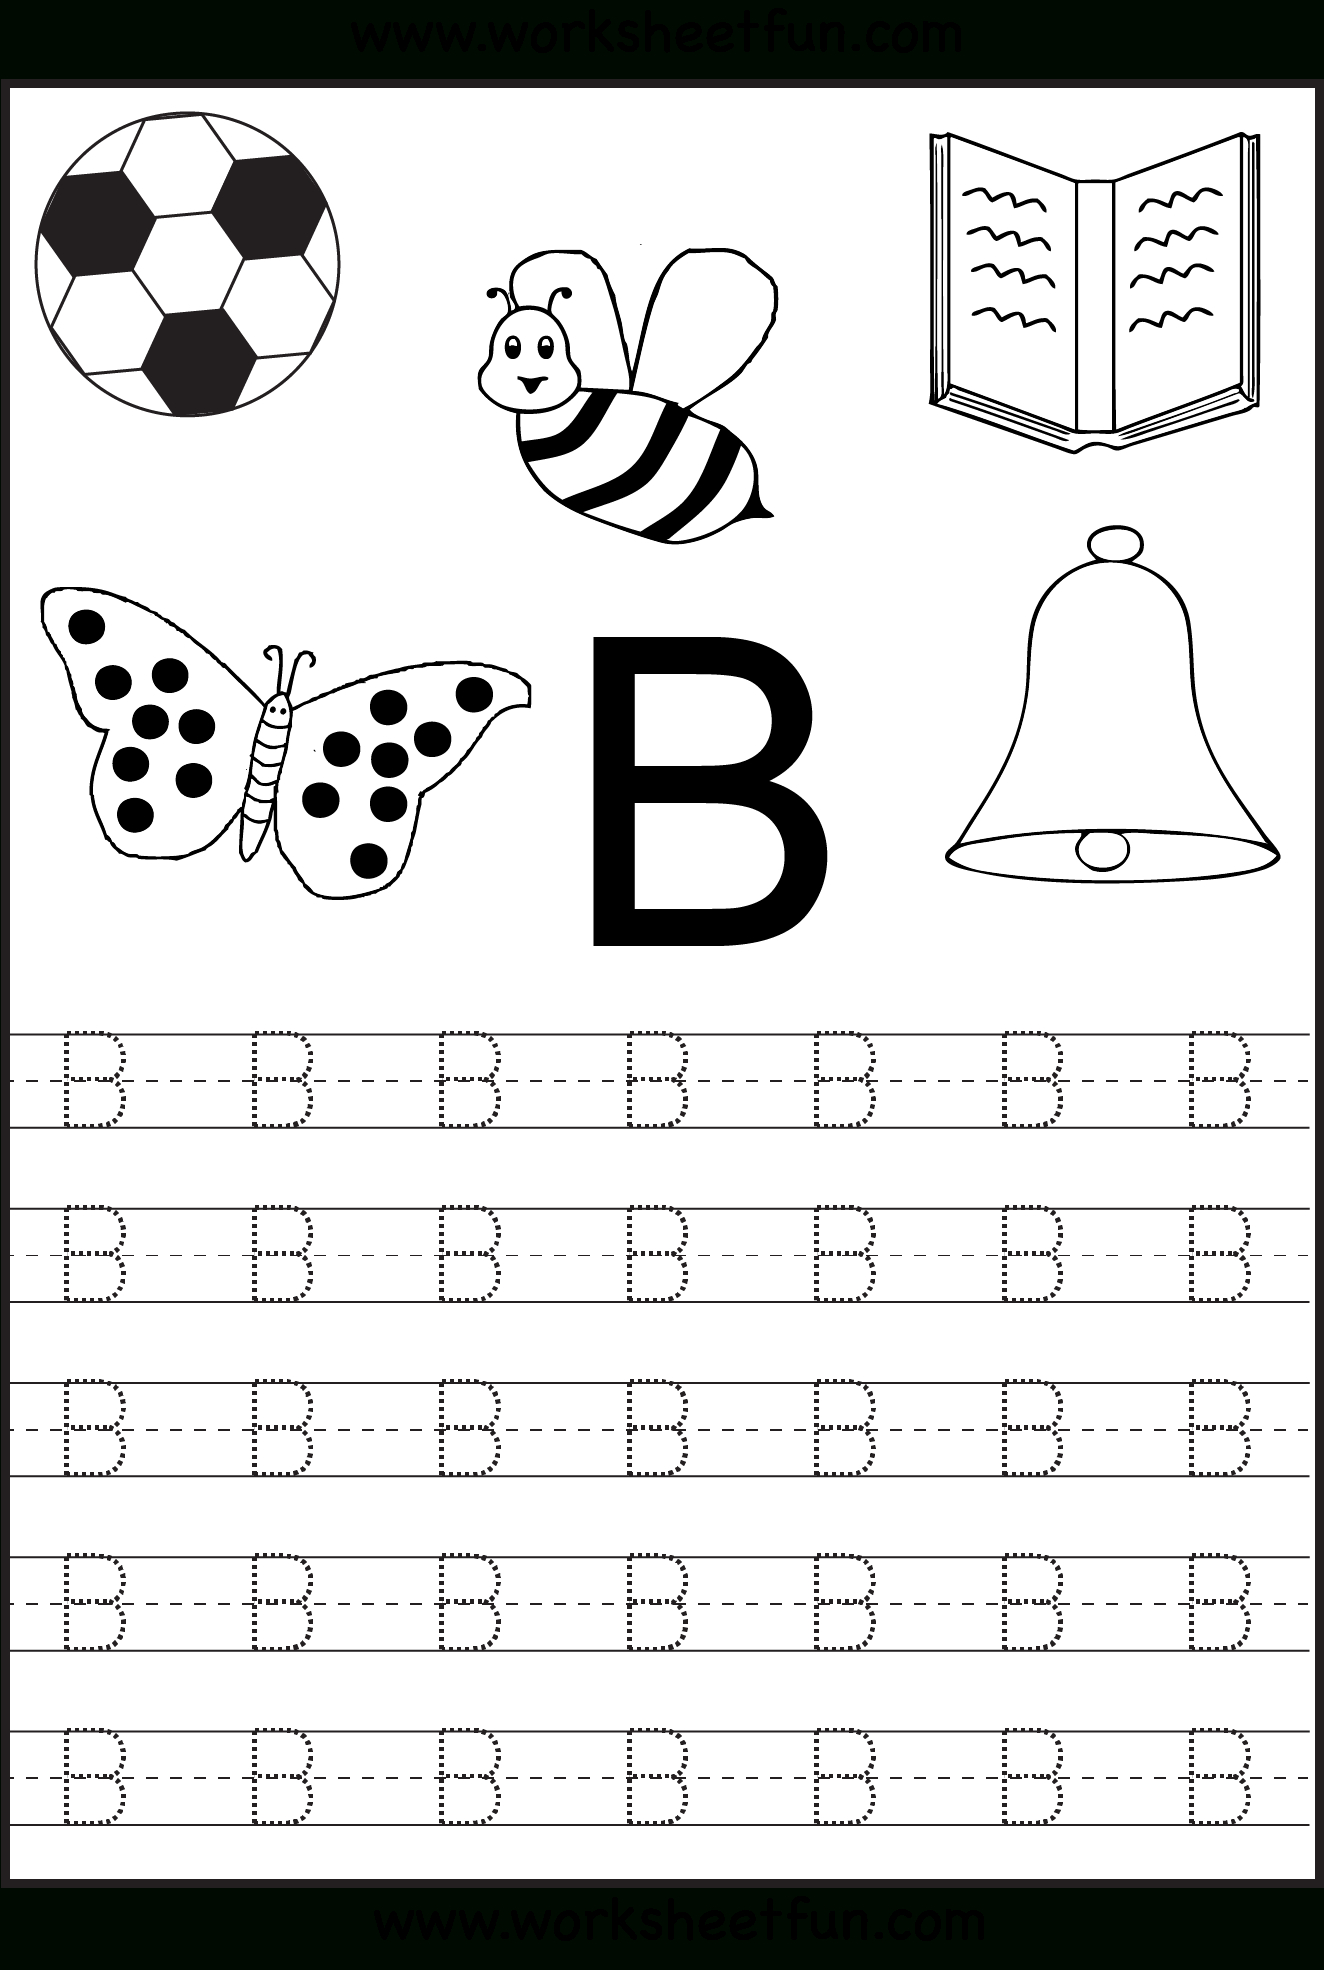 Free Printable Letter Tracing Worksheets For Kindergarten – 26 | Free Printable Tracing Worksheets